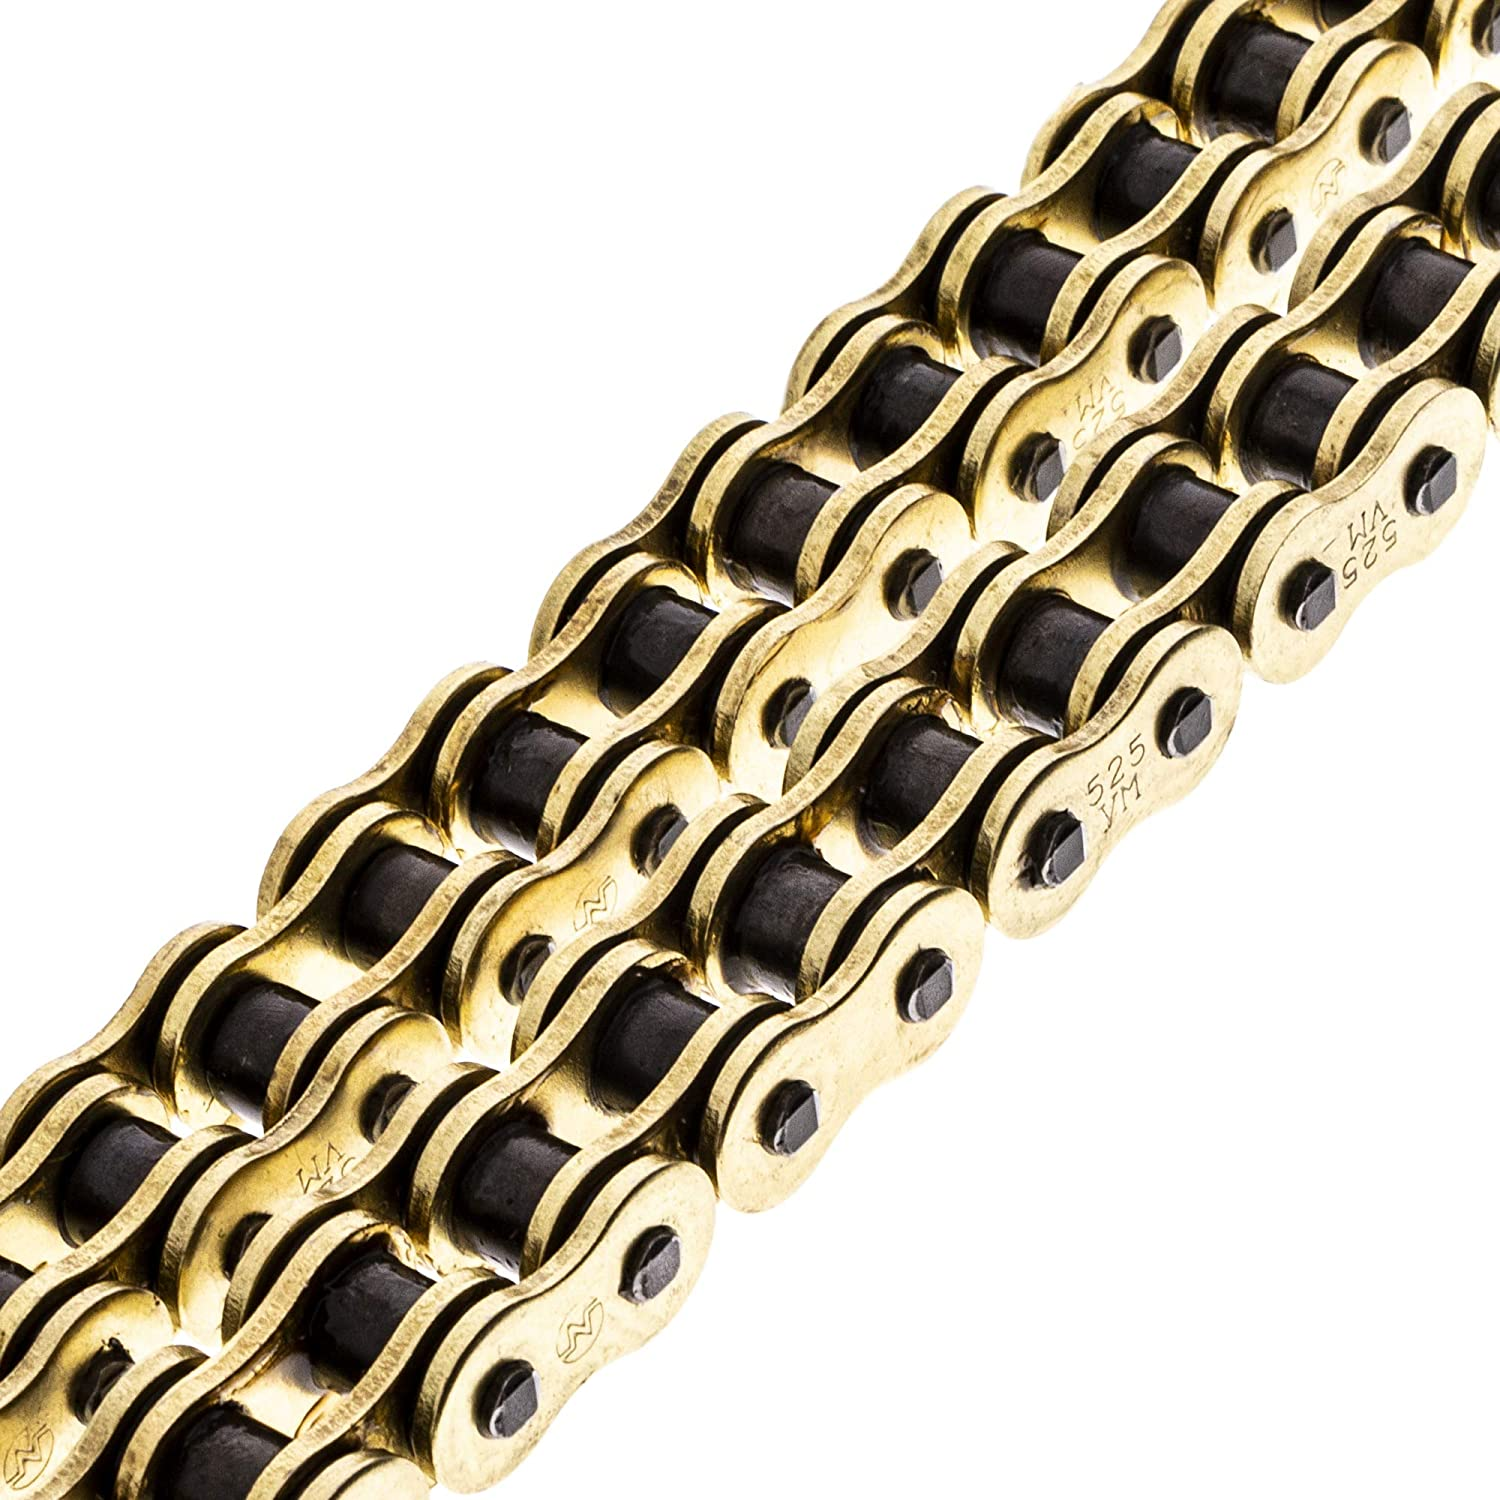 NICHE Gold 520 X-Ring Chain 94 Links With Connecting Master Link